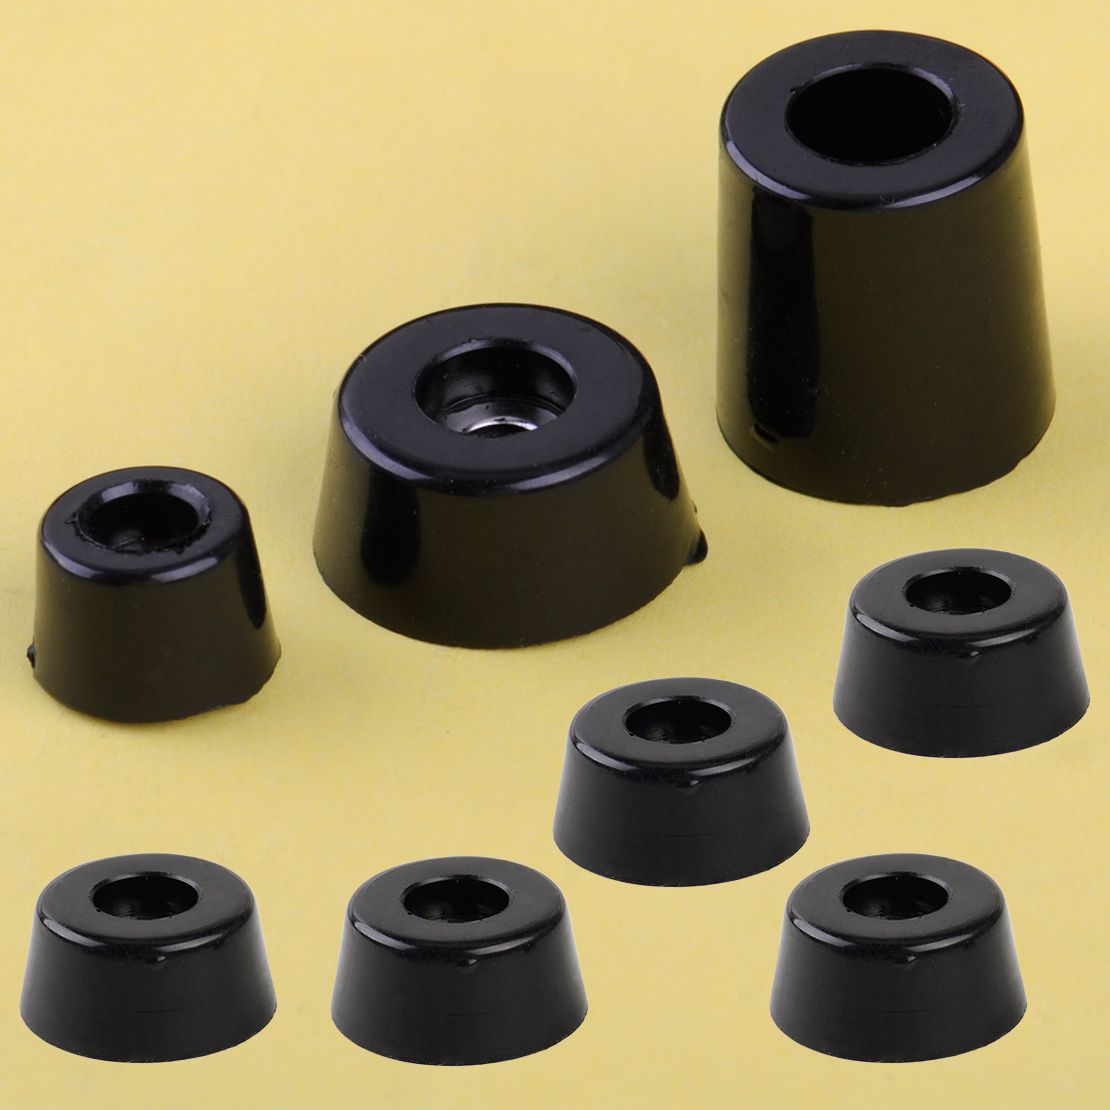 8pcs-speaker-cabinet-furniture-chair-table-box-conical-rubber-foot-pad-stand-shock-absorber-s-m-l-skid-resistance